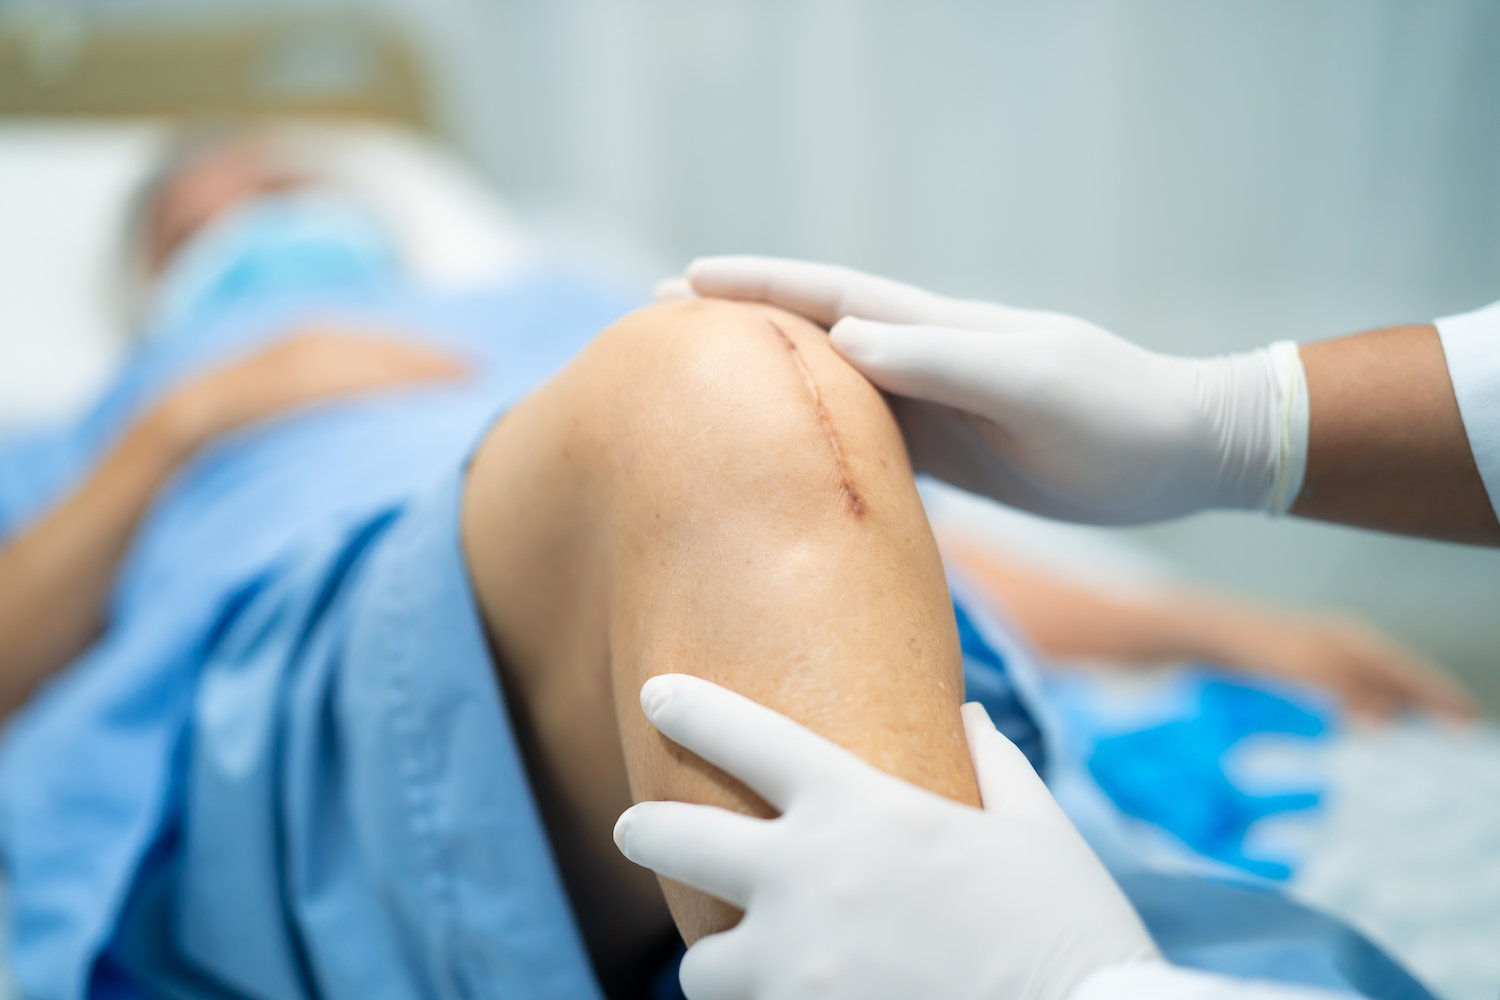 doctor or nurse checking a patient's knee wound stitches or sutures